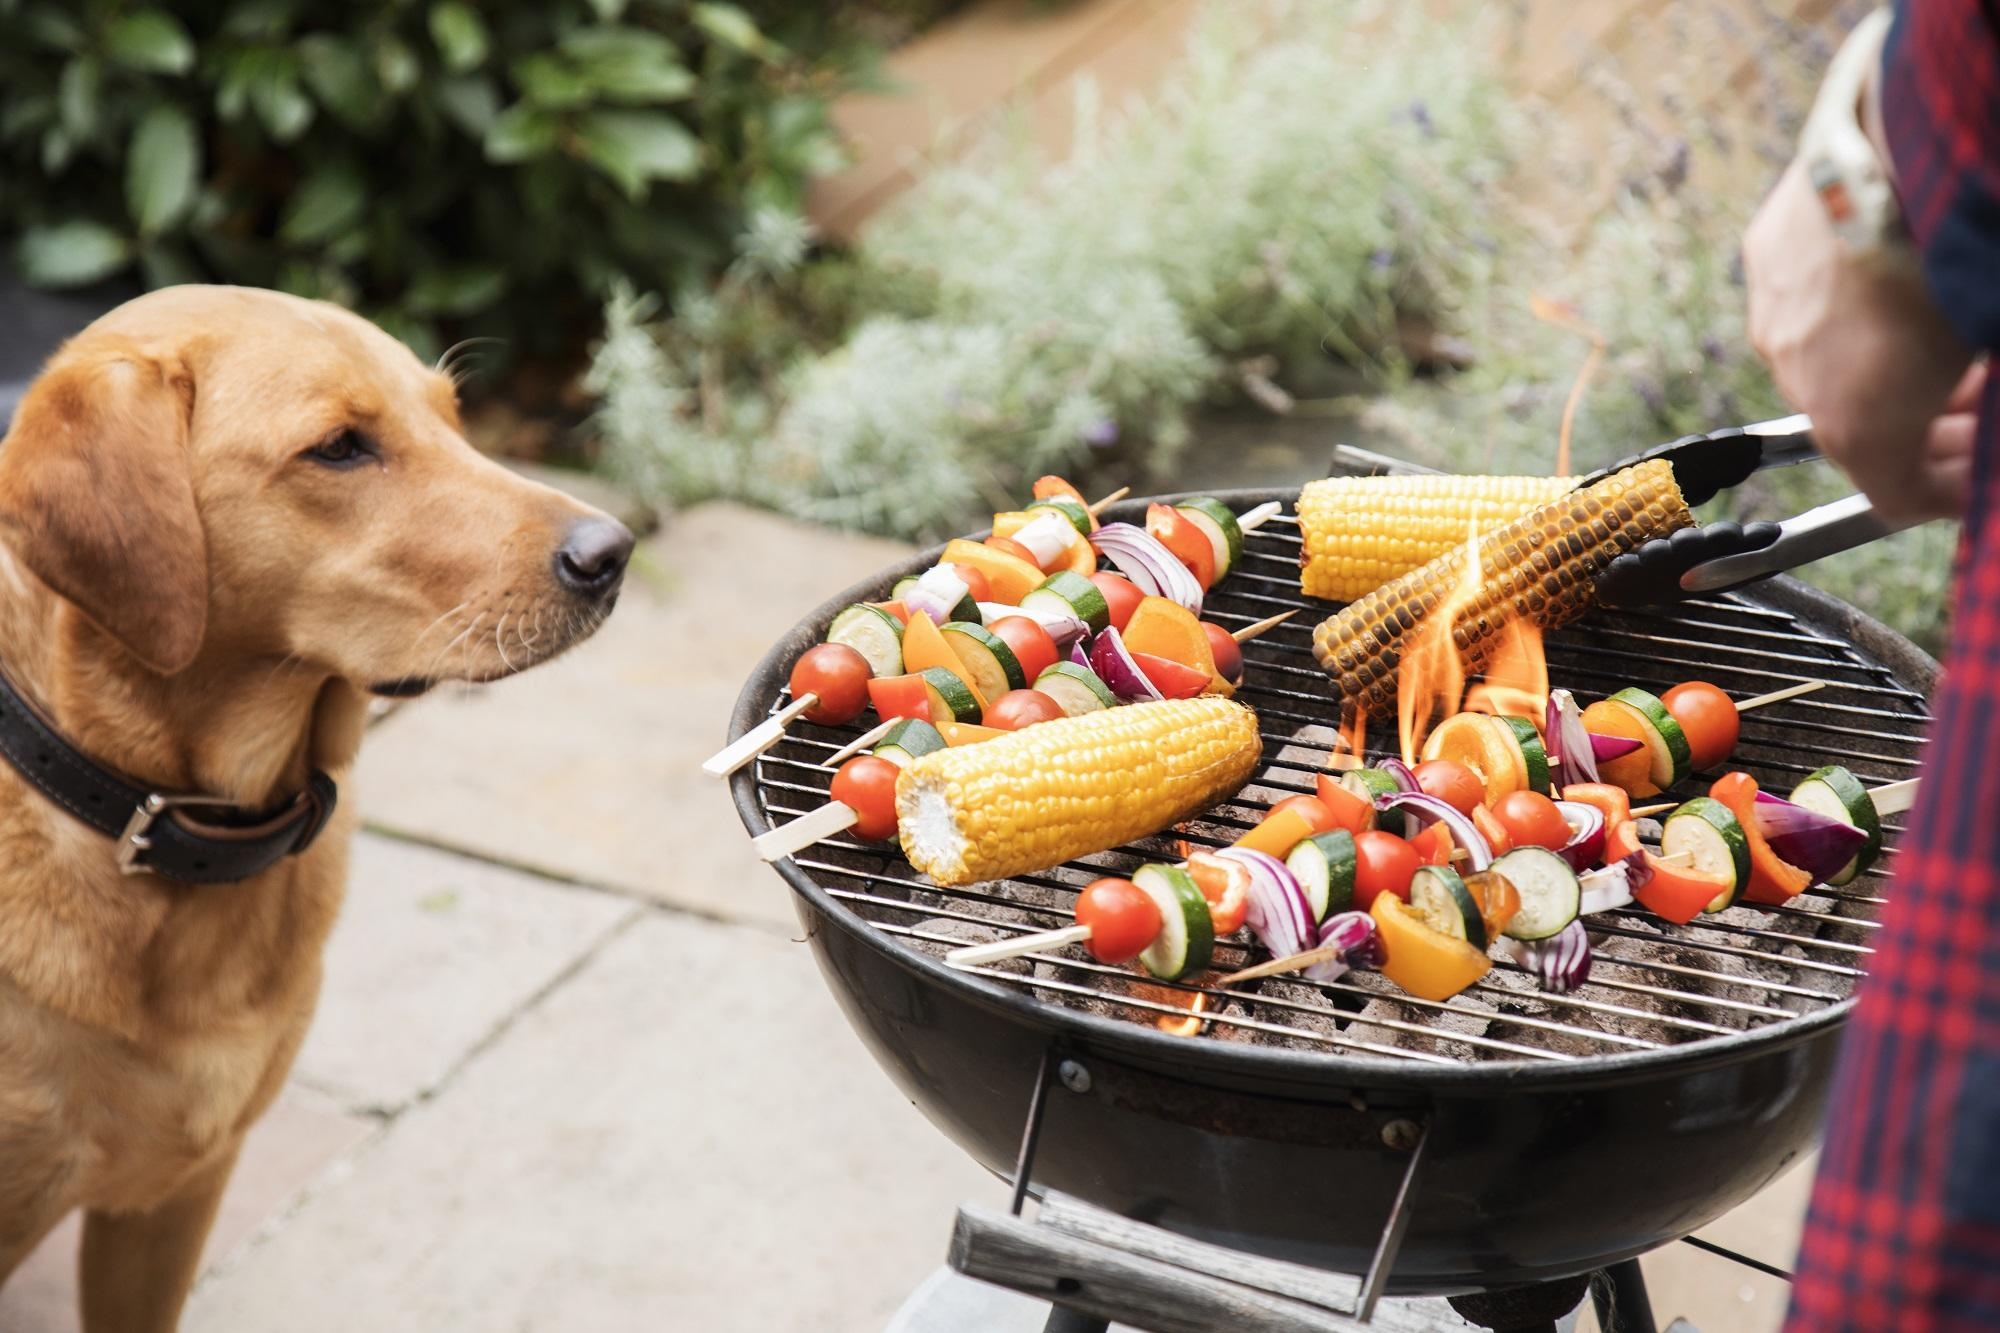 Labrador dog looks interested at food on barbecue.